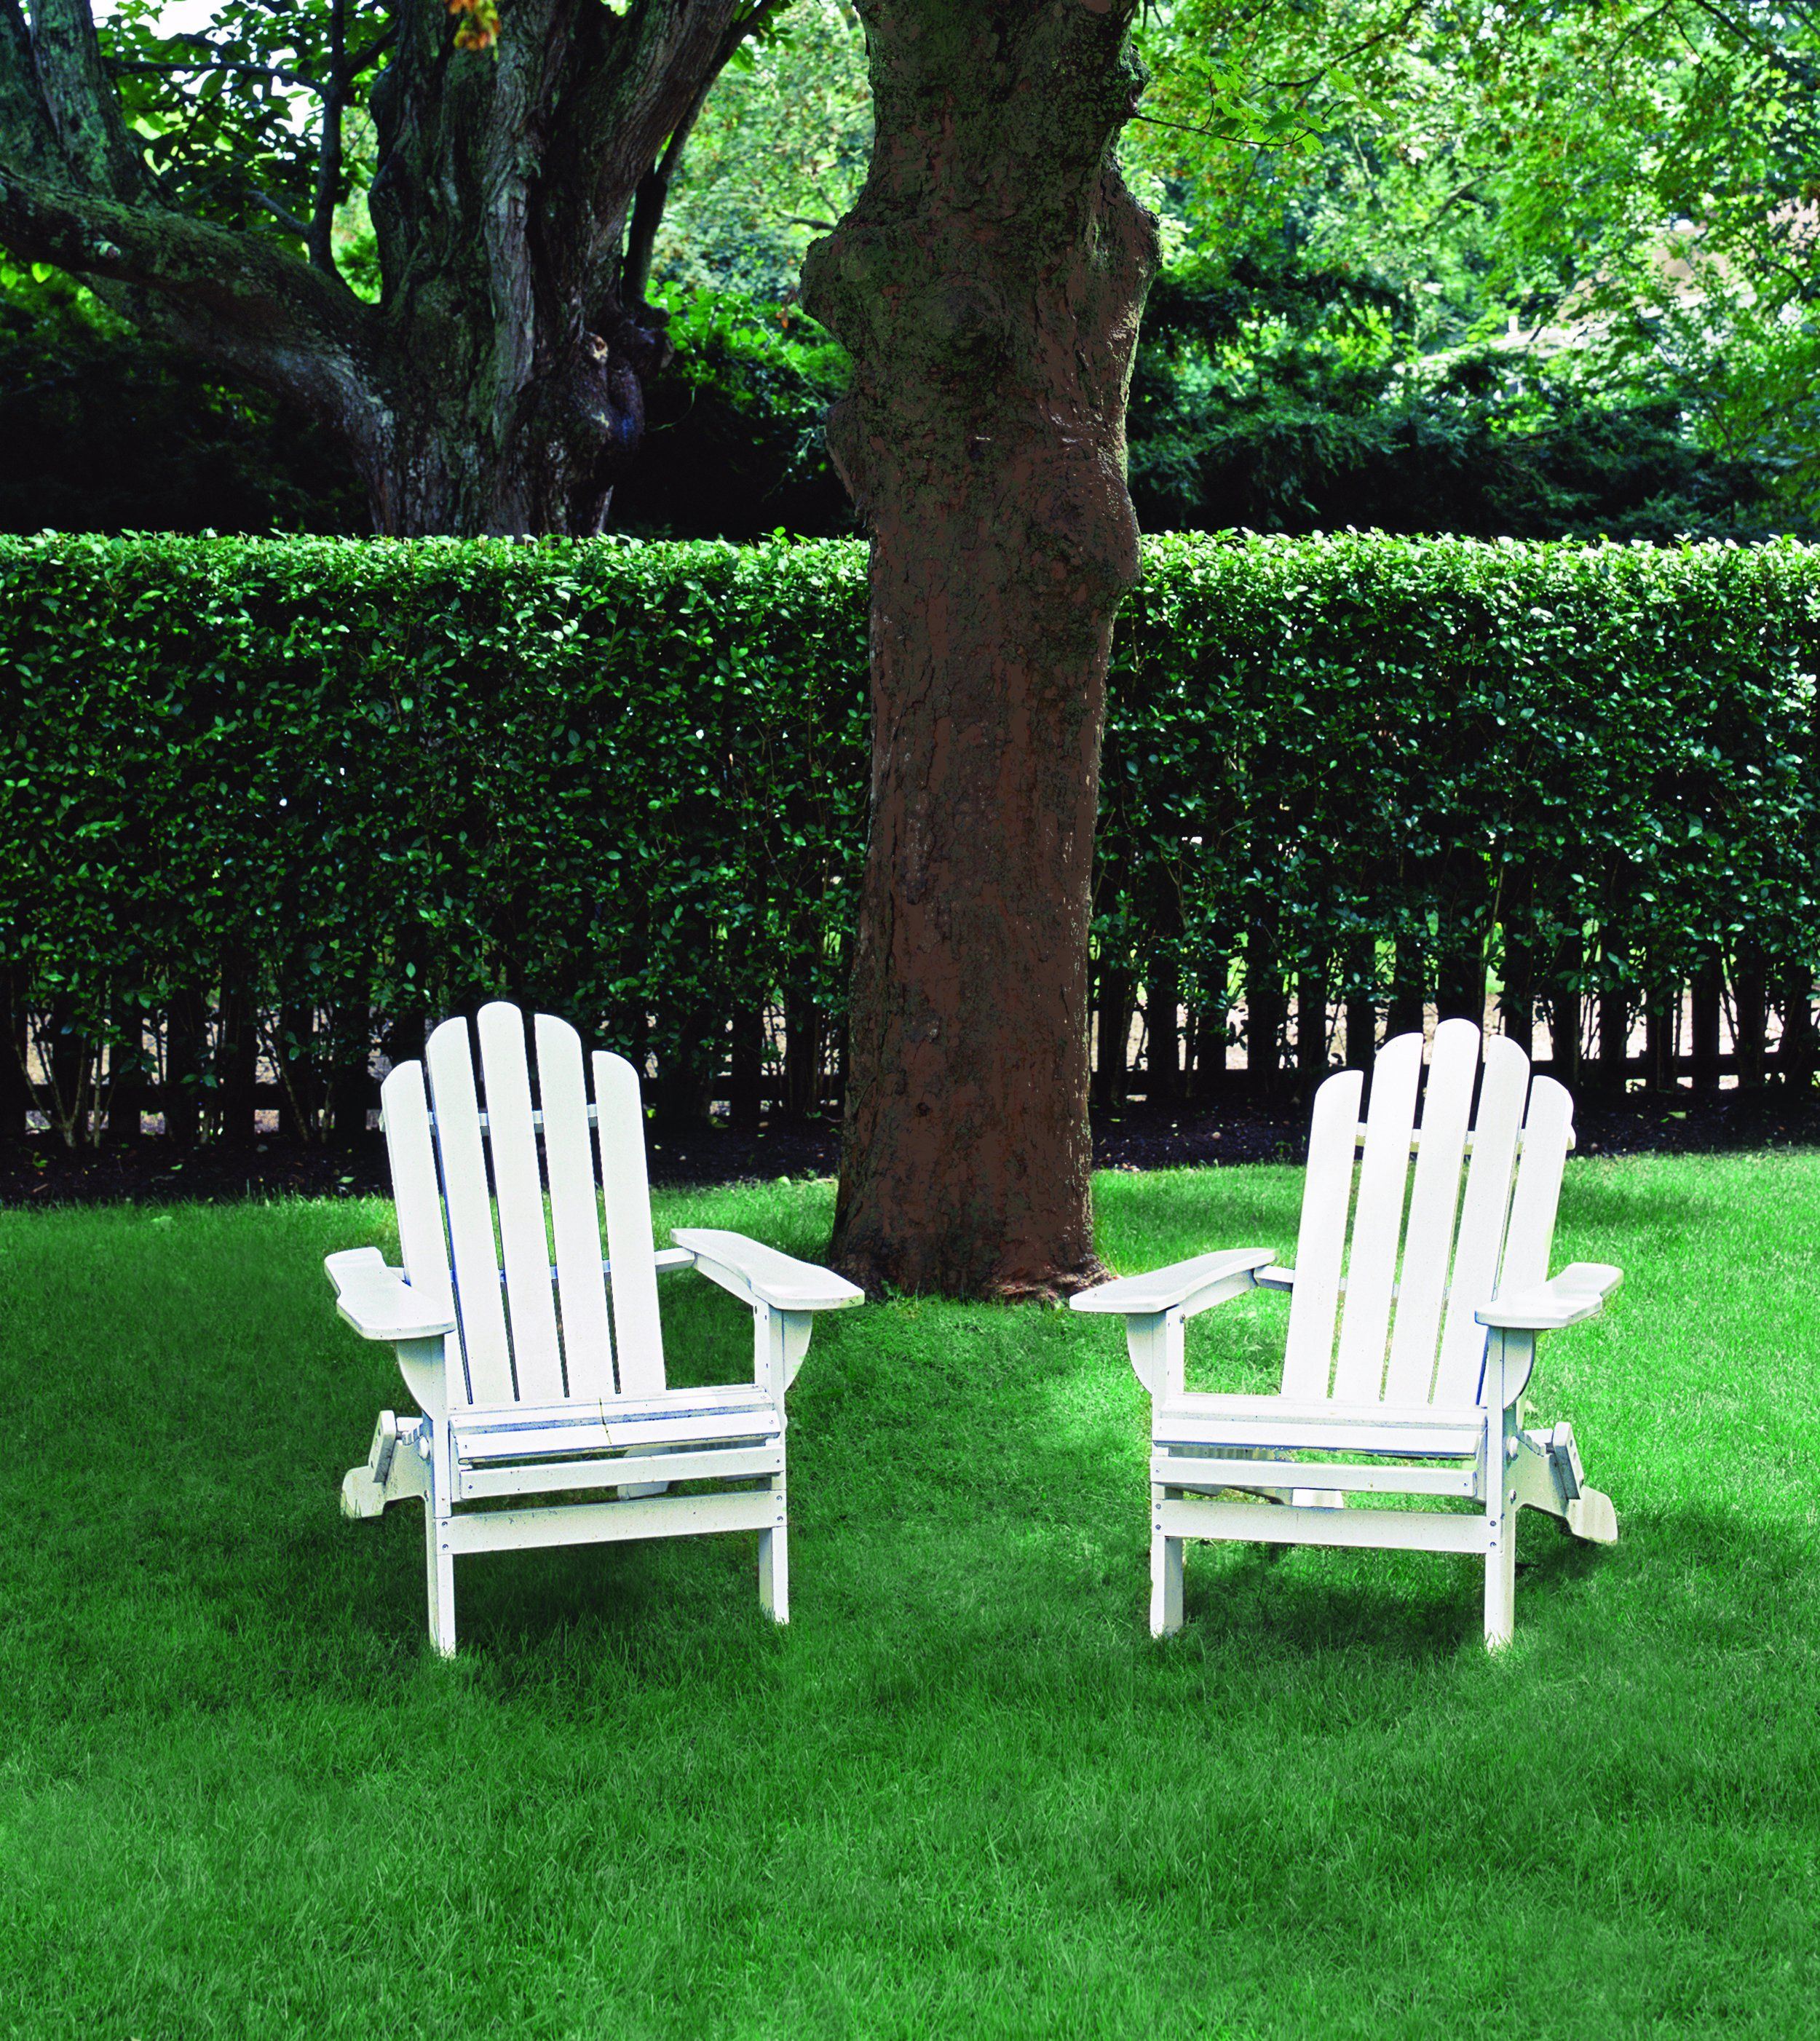 How to Build an Adirondack Chair | Project ideas and Craft